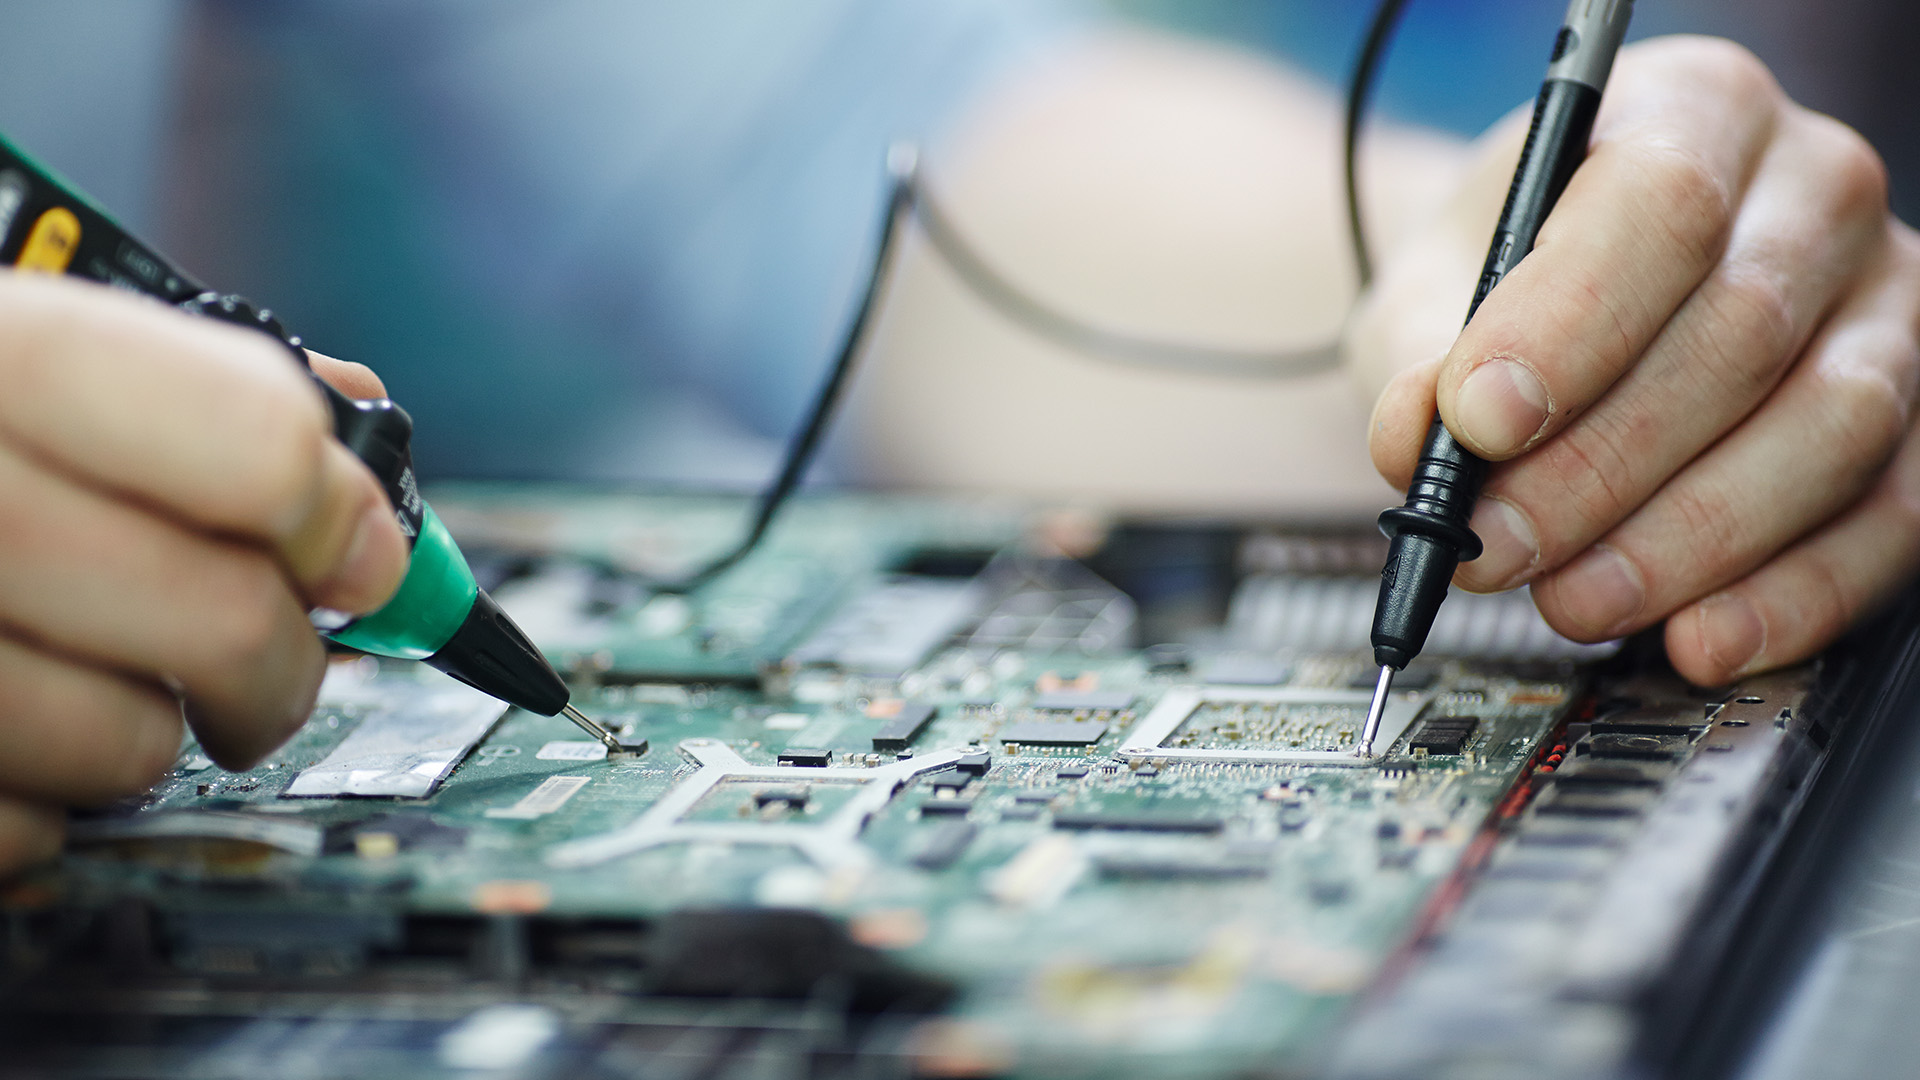 Person fixing a Circuit Board